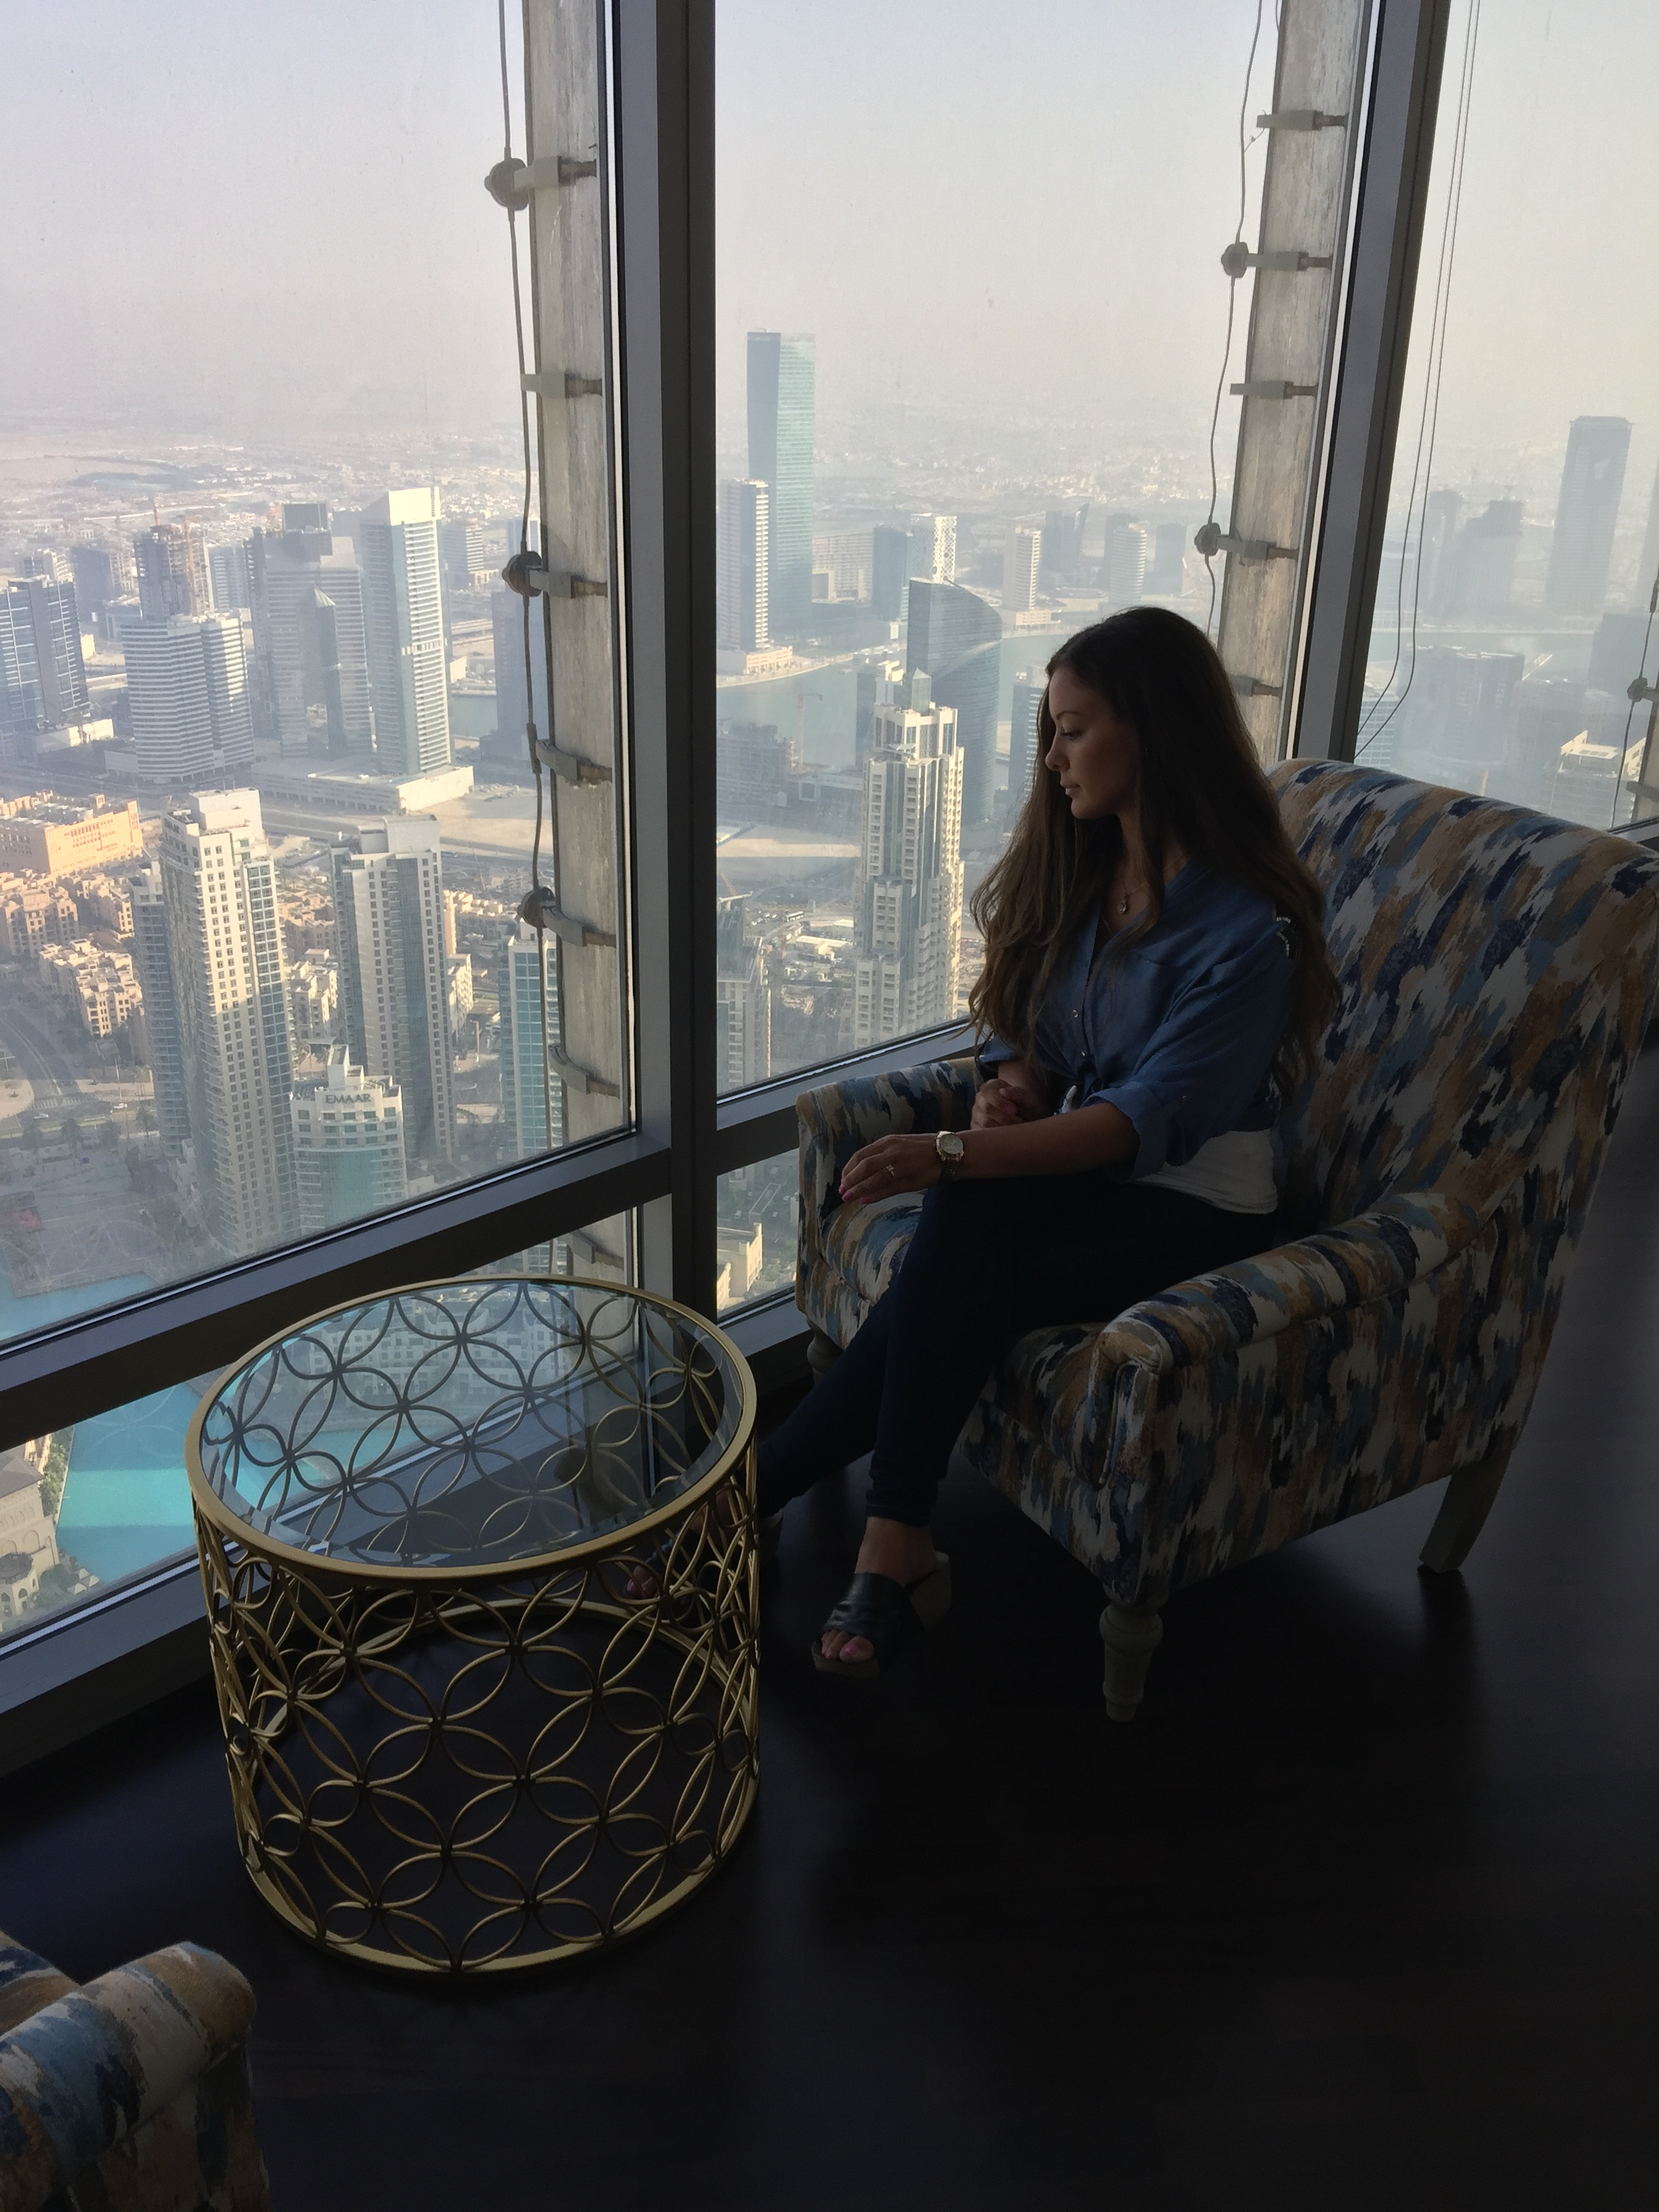 over looking dubai ferrari dubai burj khalifa room travel blogger influencer vlogger carla maria bruno advantures.jpg